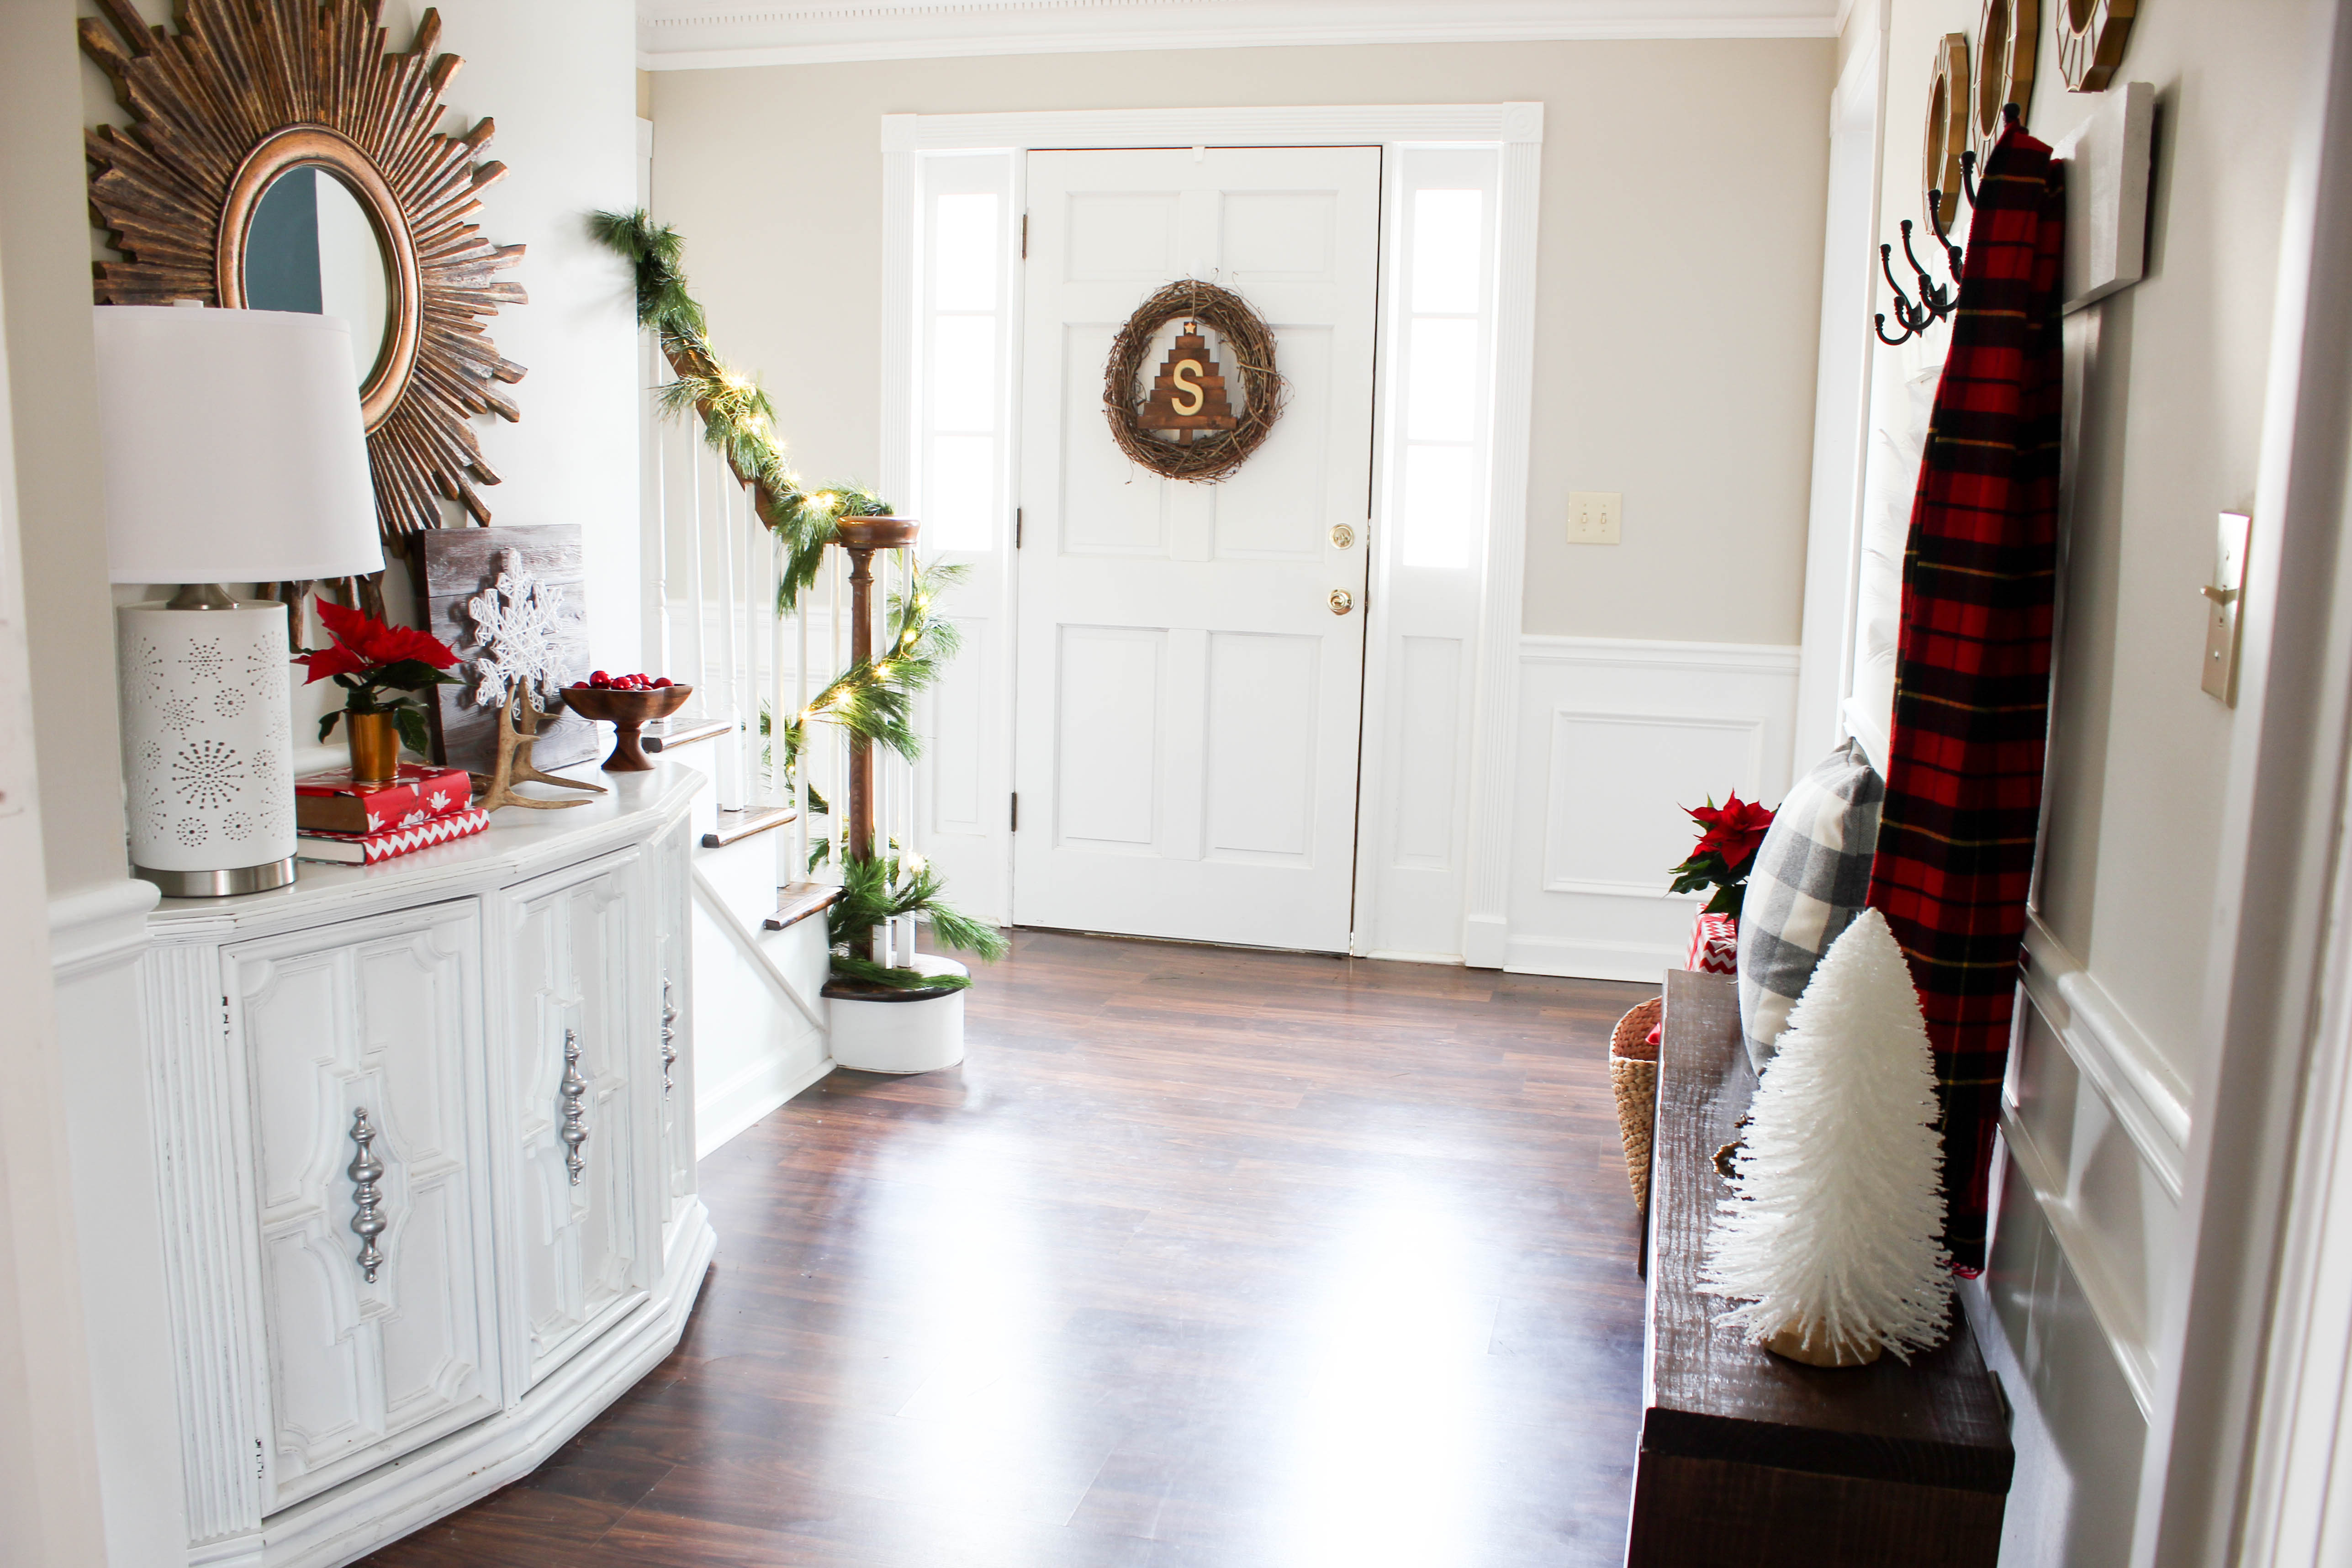 Home for the Holidays Design Challenge: Entryway Reveal! - Erin Spain